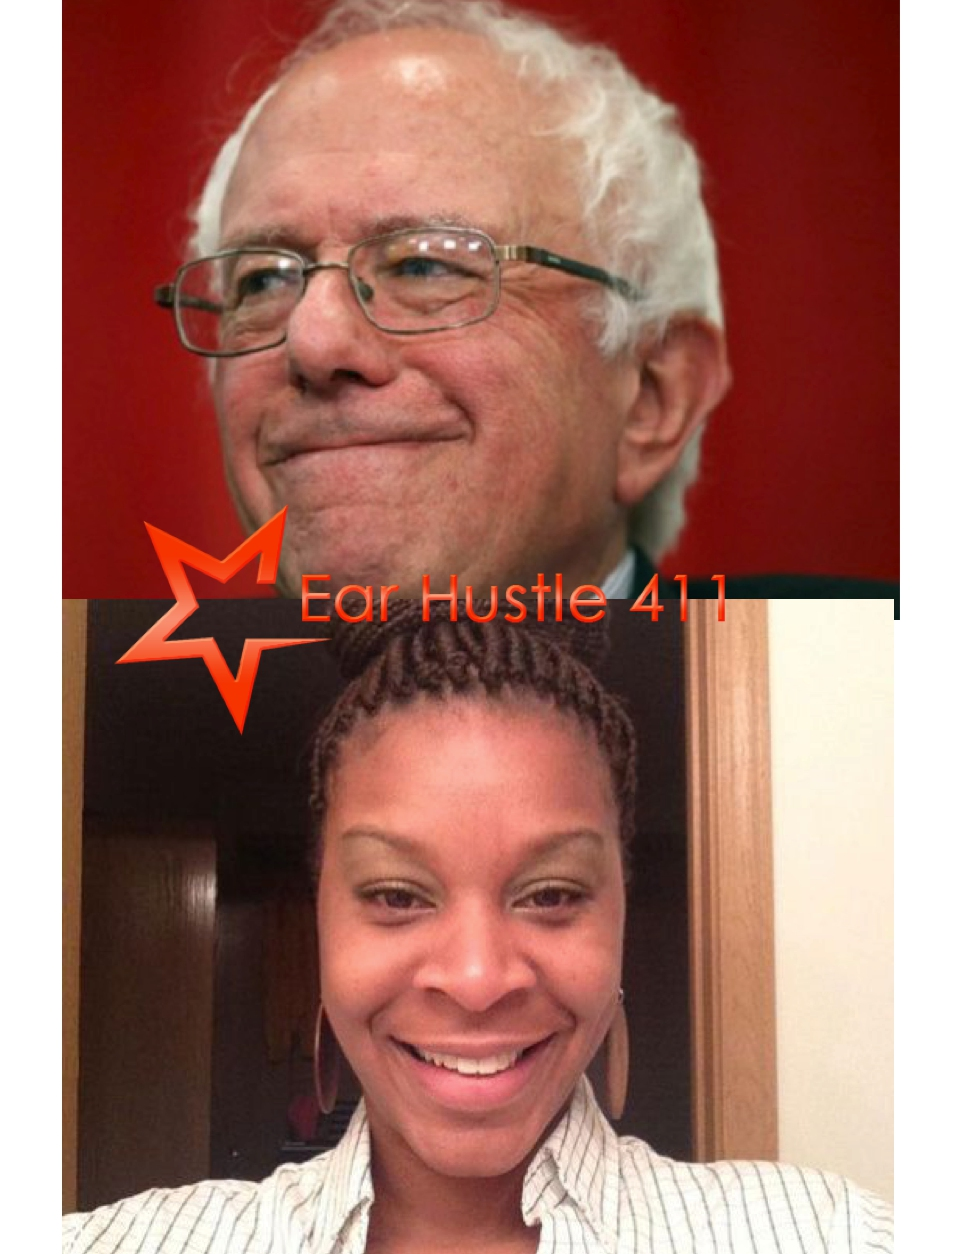 bland and sanders